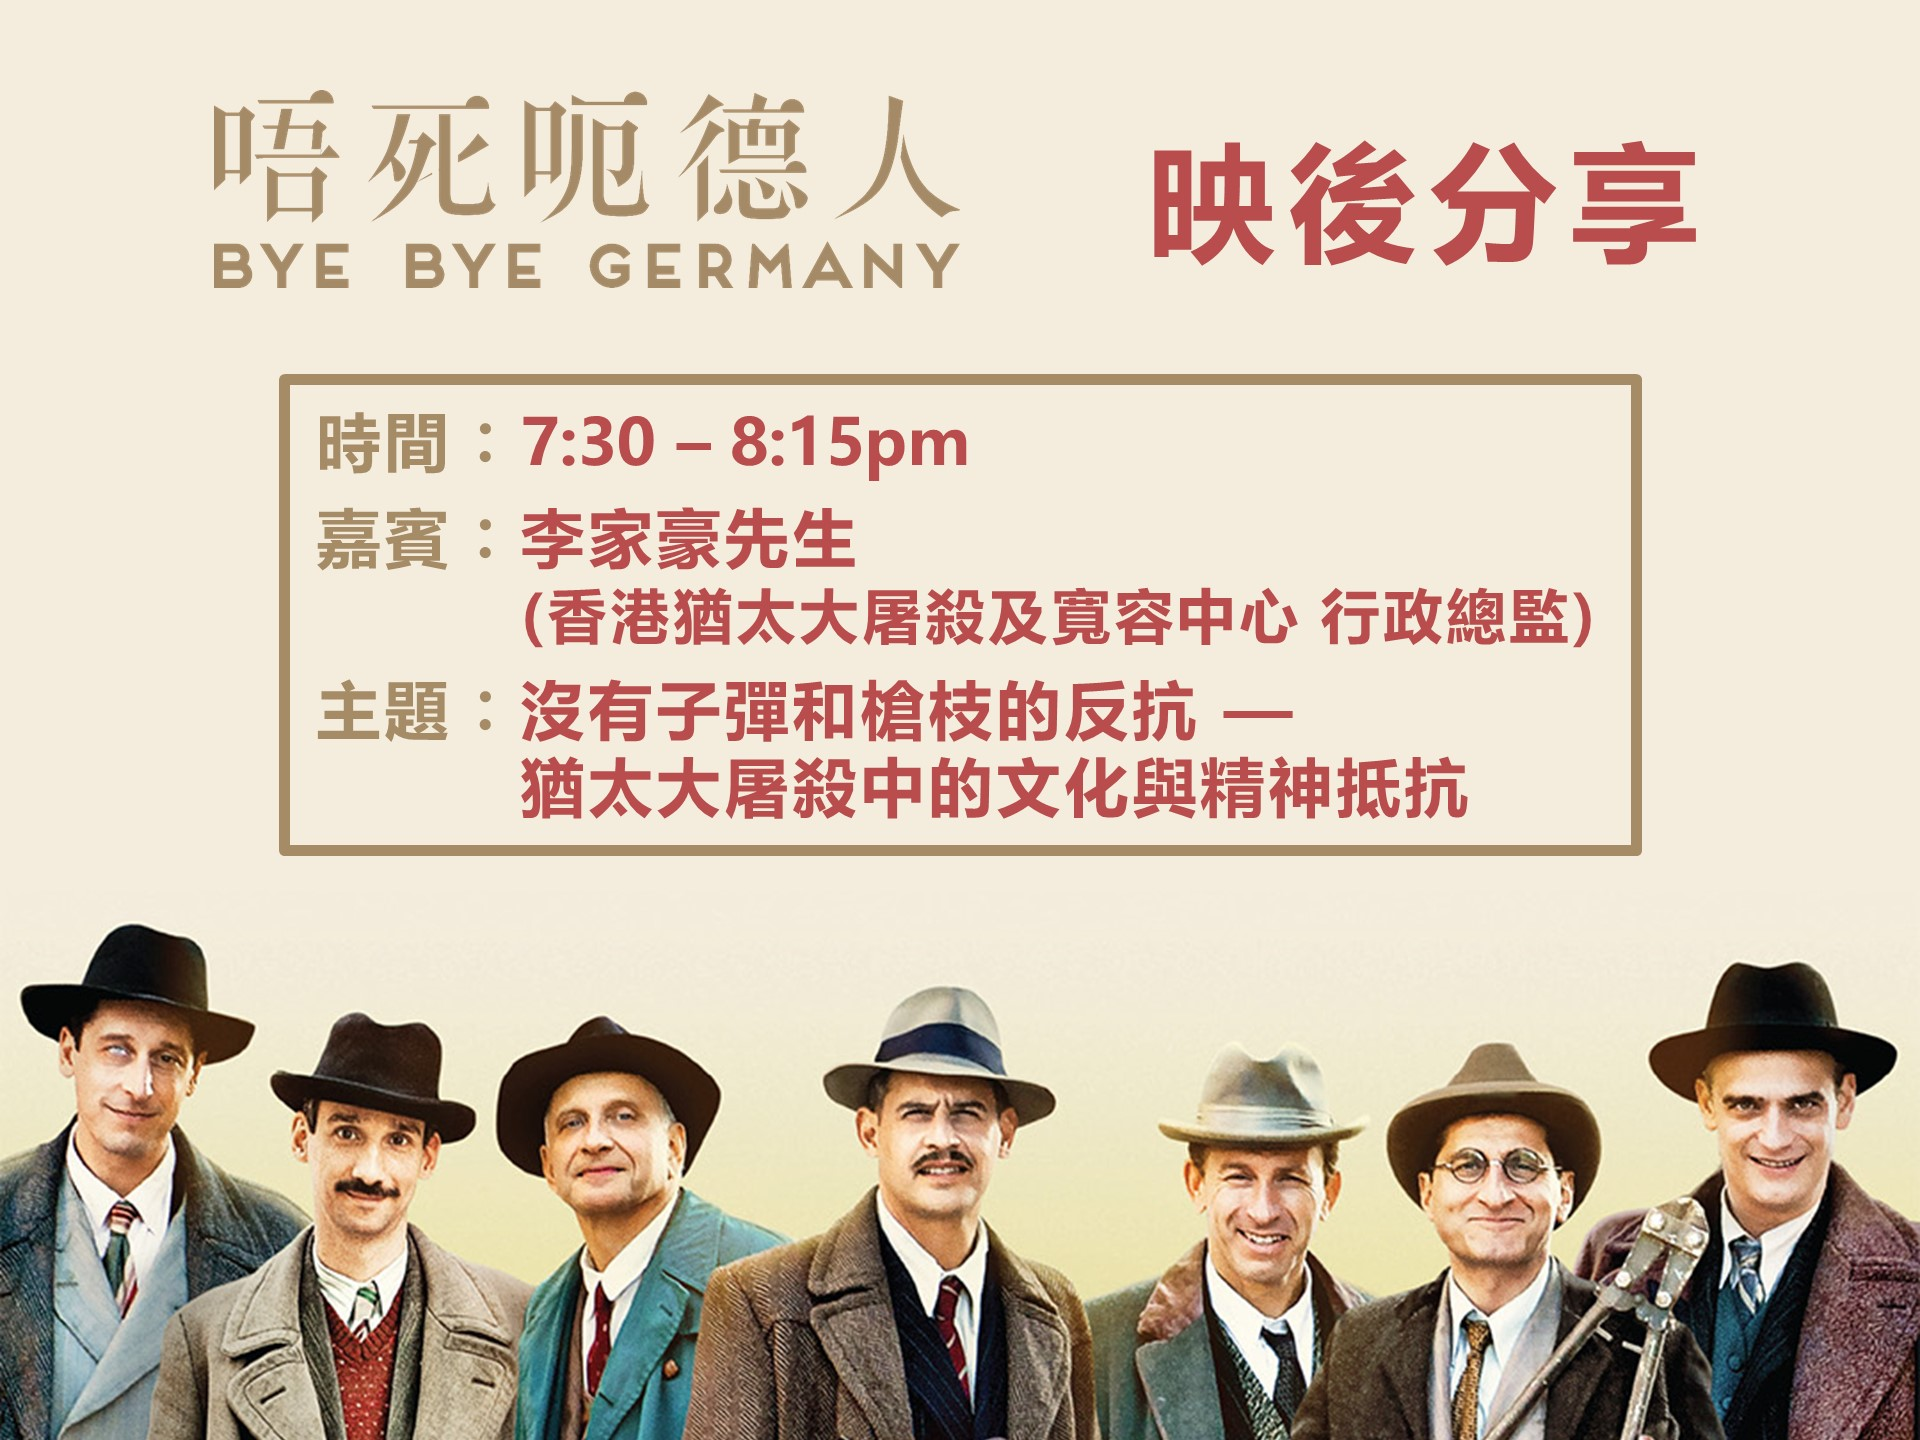 《唔死呃德人》映後談 Bye Bye Germany Post-screening Sharing